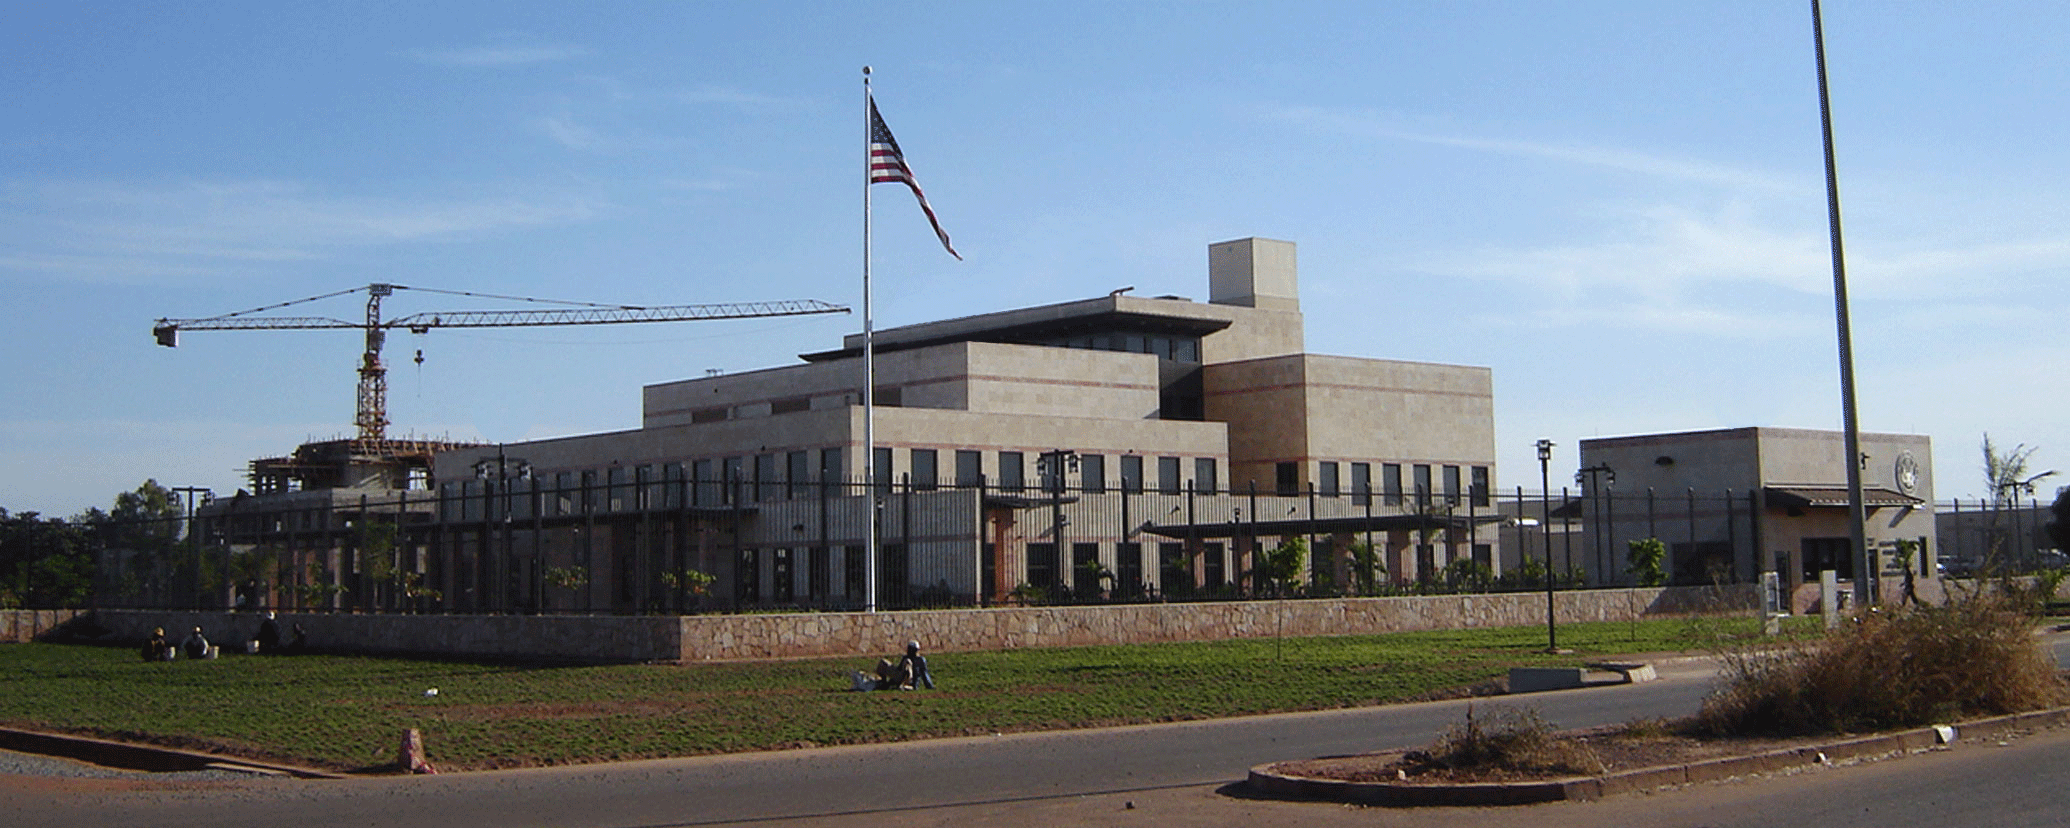 Caddell Construction Project - U.S. Embassy in Bamako, Mali